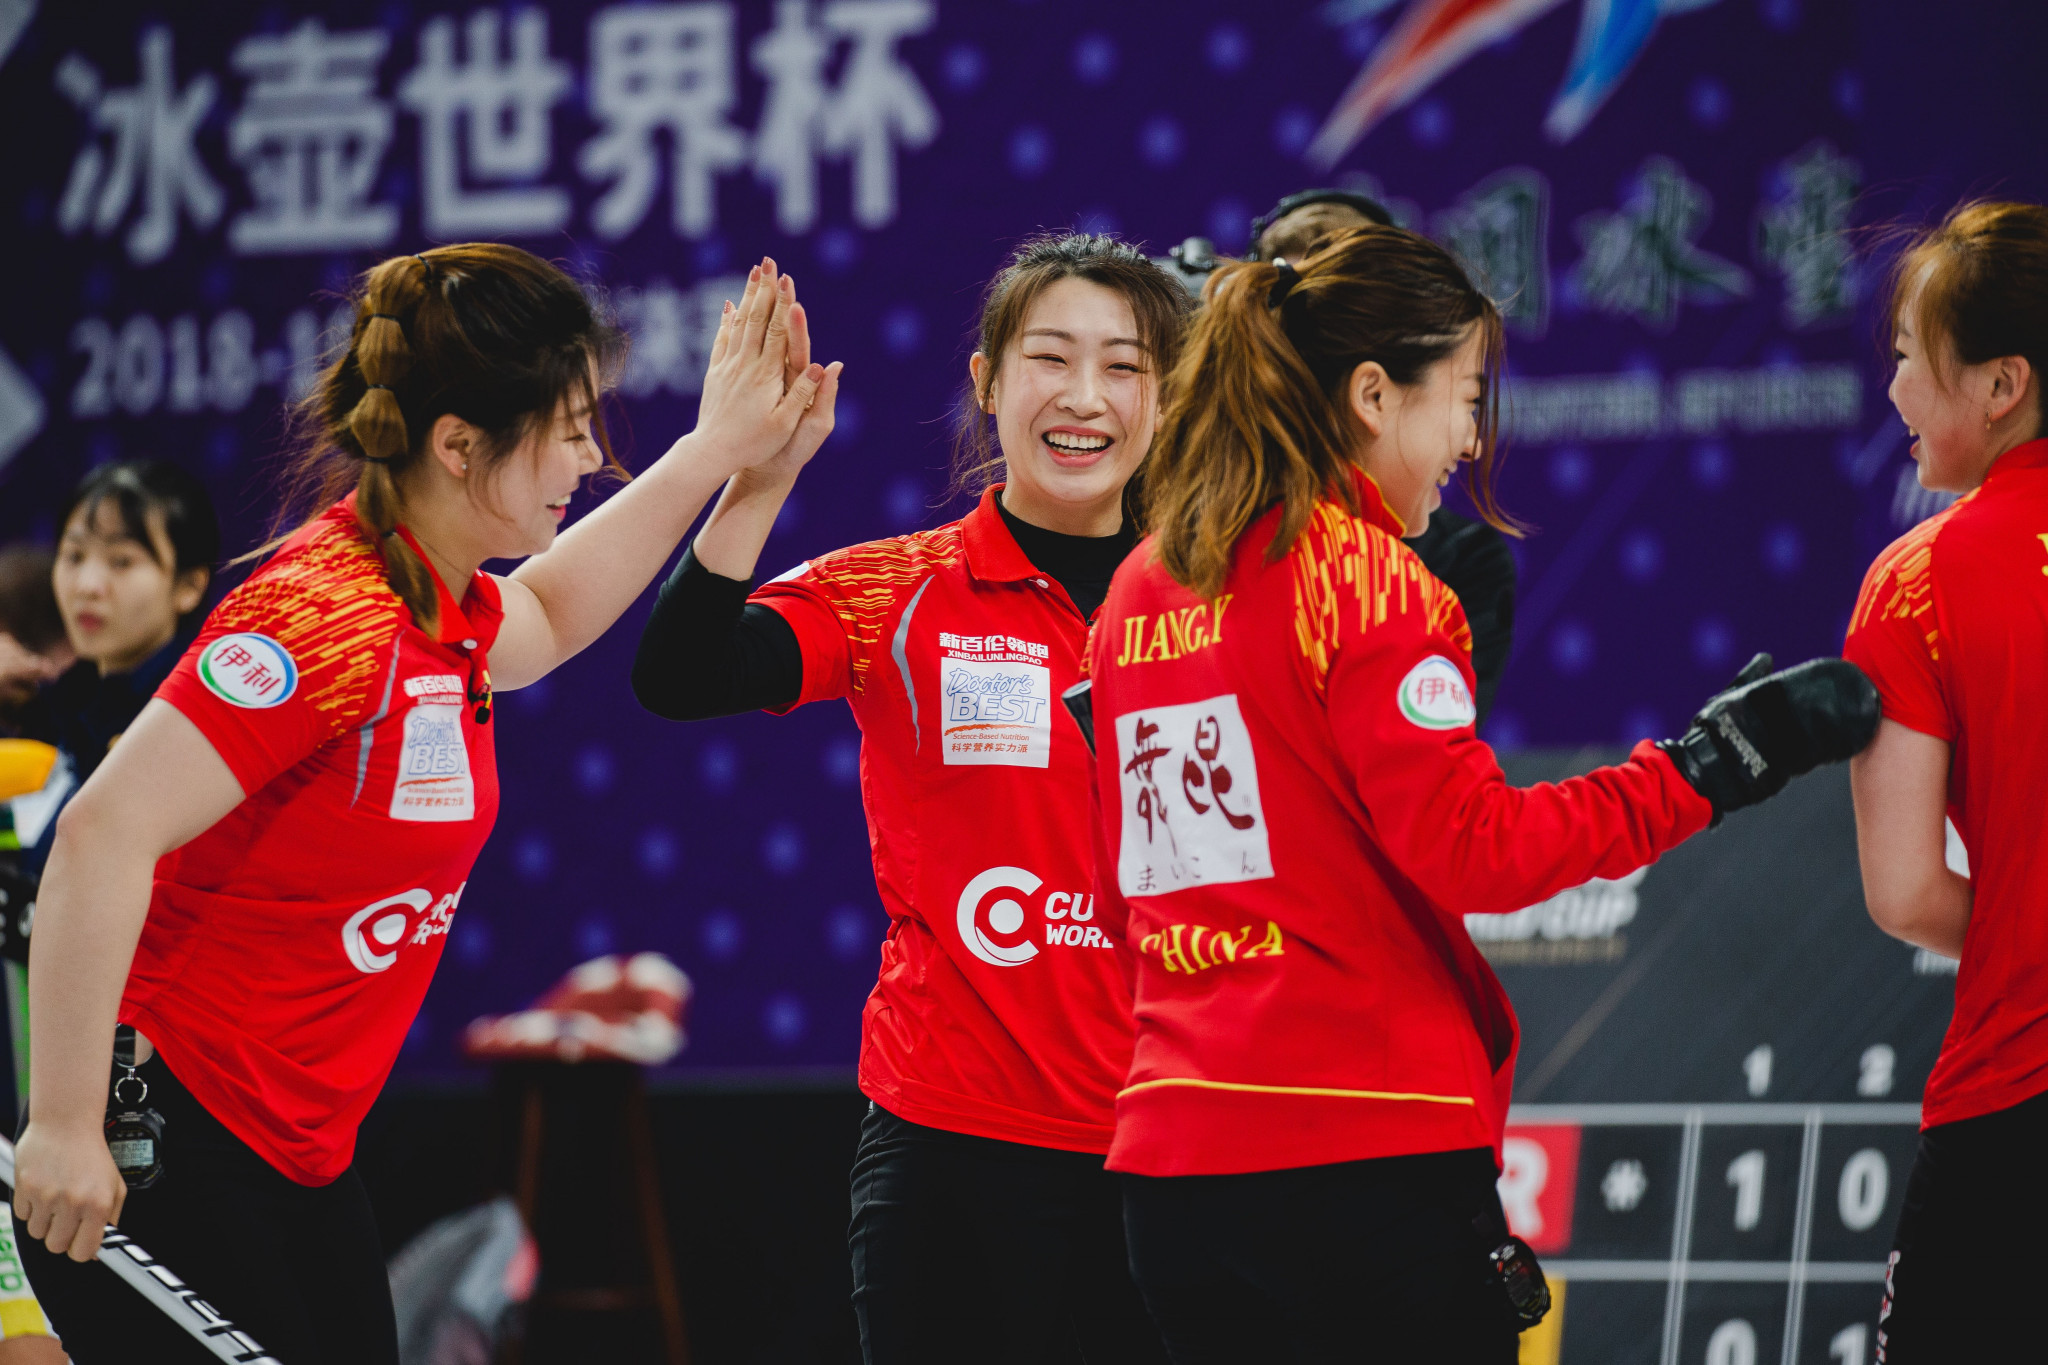 The hosts delighted the home crowd with a victory against the US at the Curling World Cup grand final in Beijing ©World Curling Federation